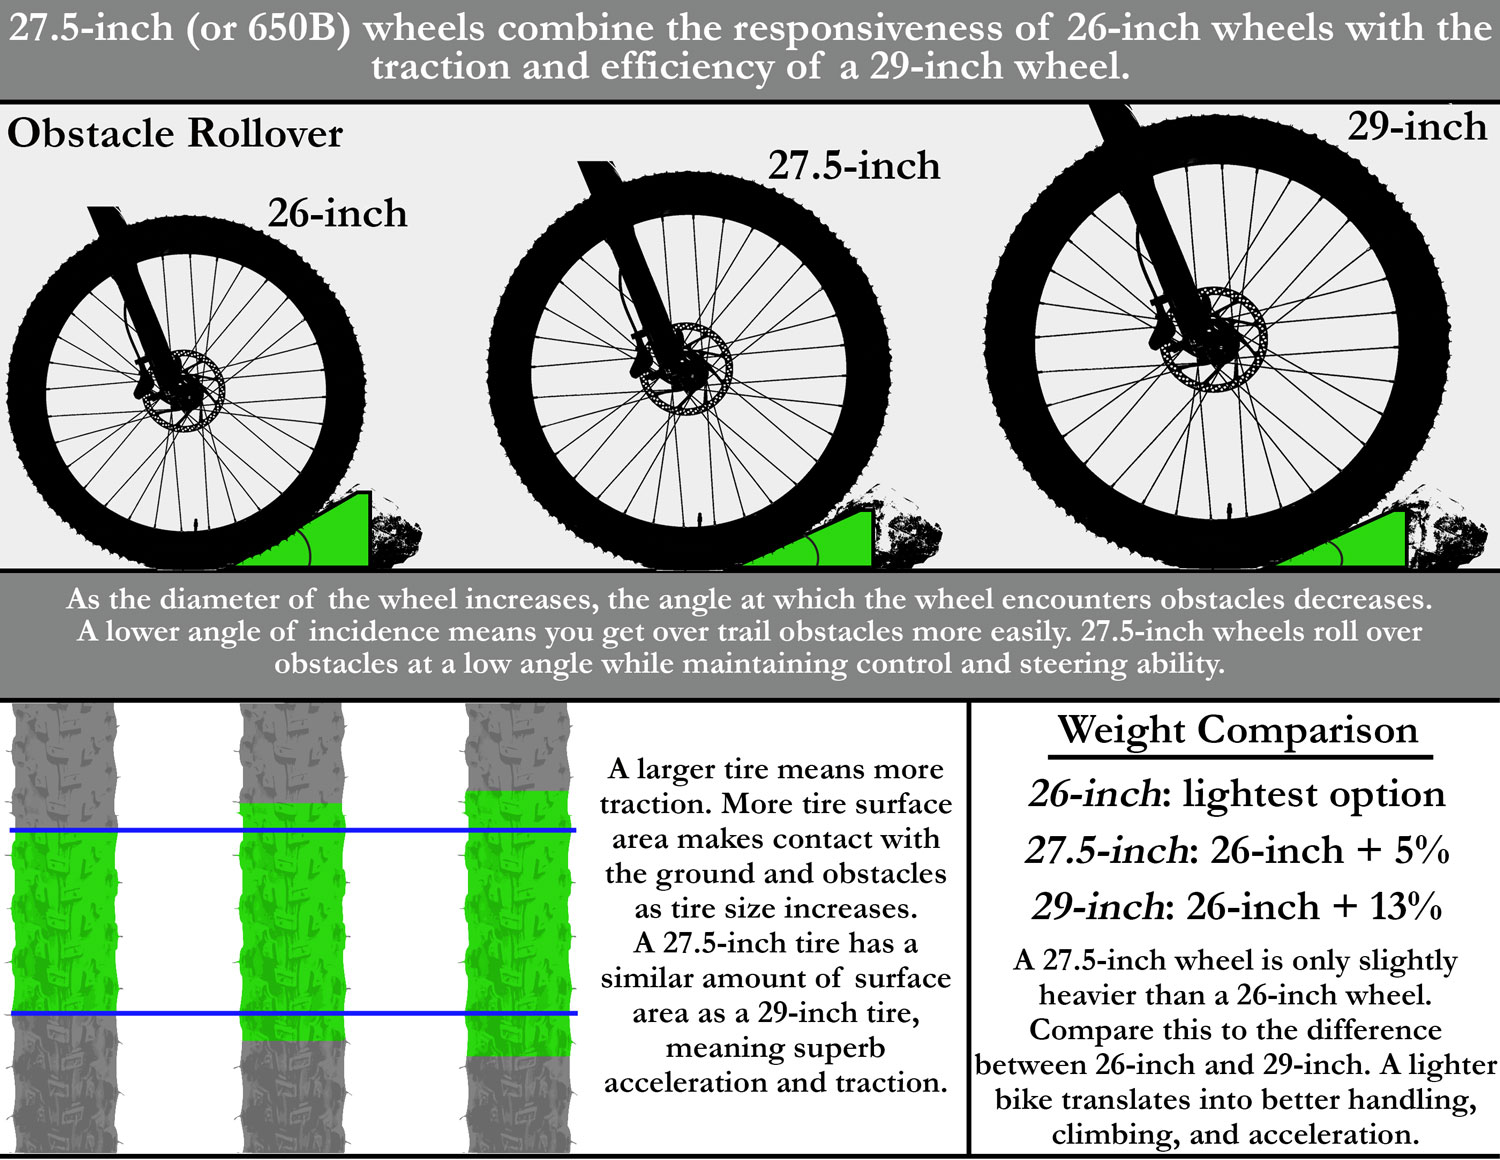 27.5-inch (650B) wheels explained